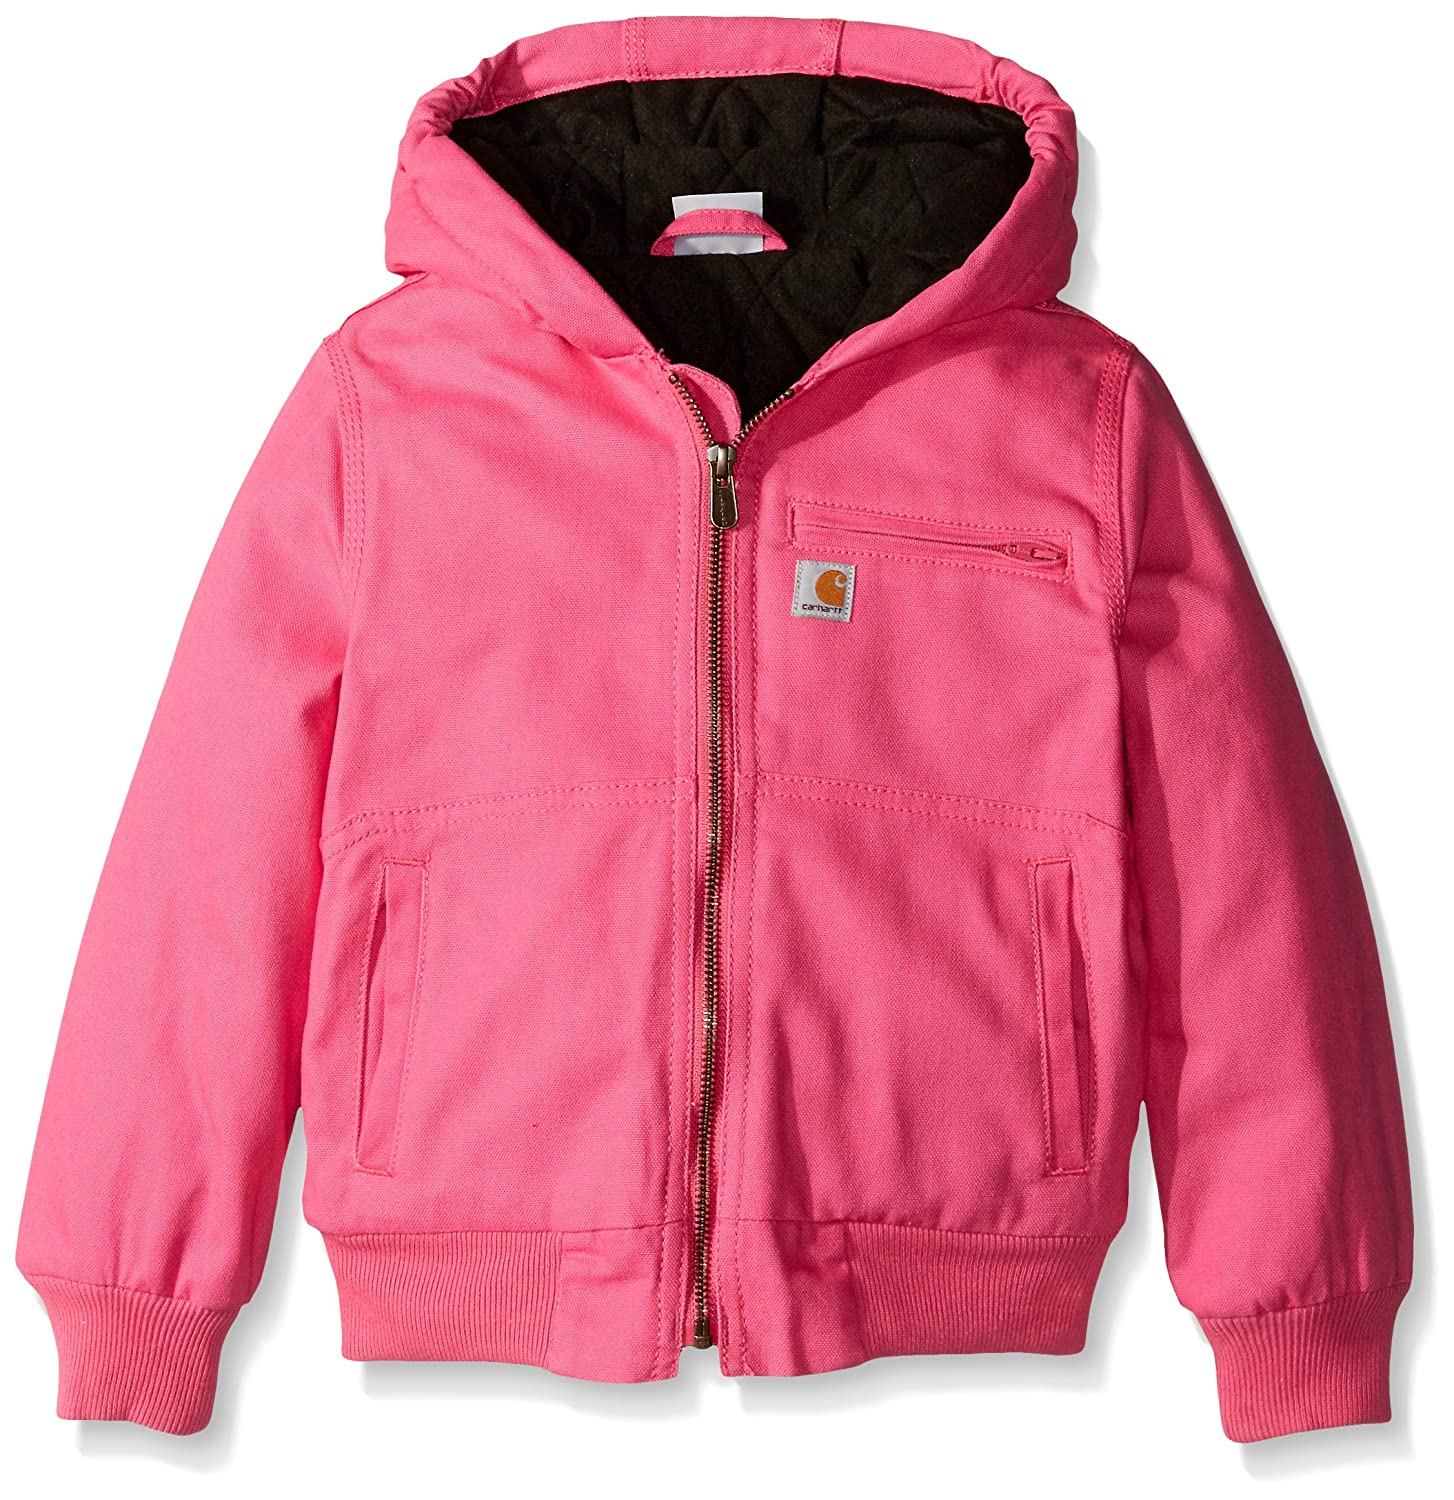 Carhartt Big Girls' Wildwood Jacket Quilt Carhartt Girls 7-16 CP9499